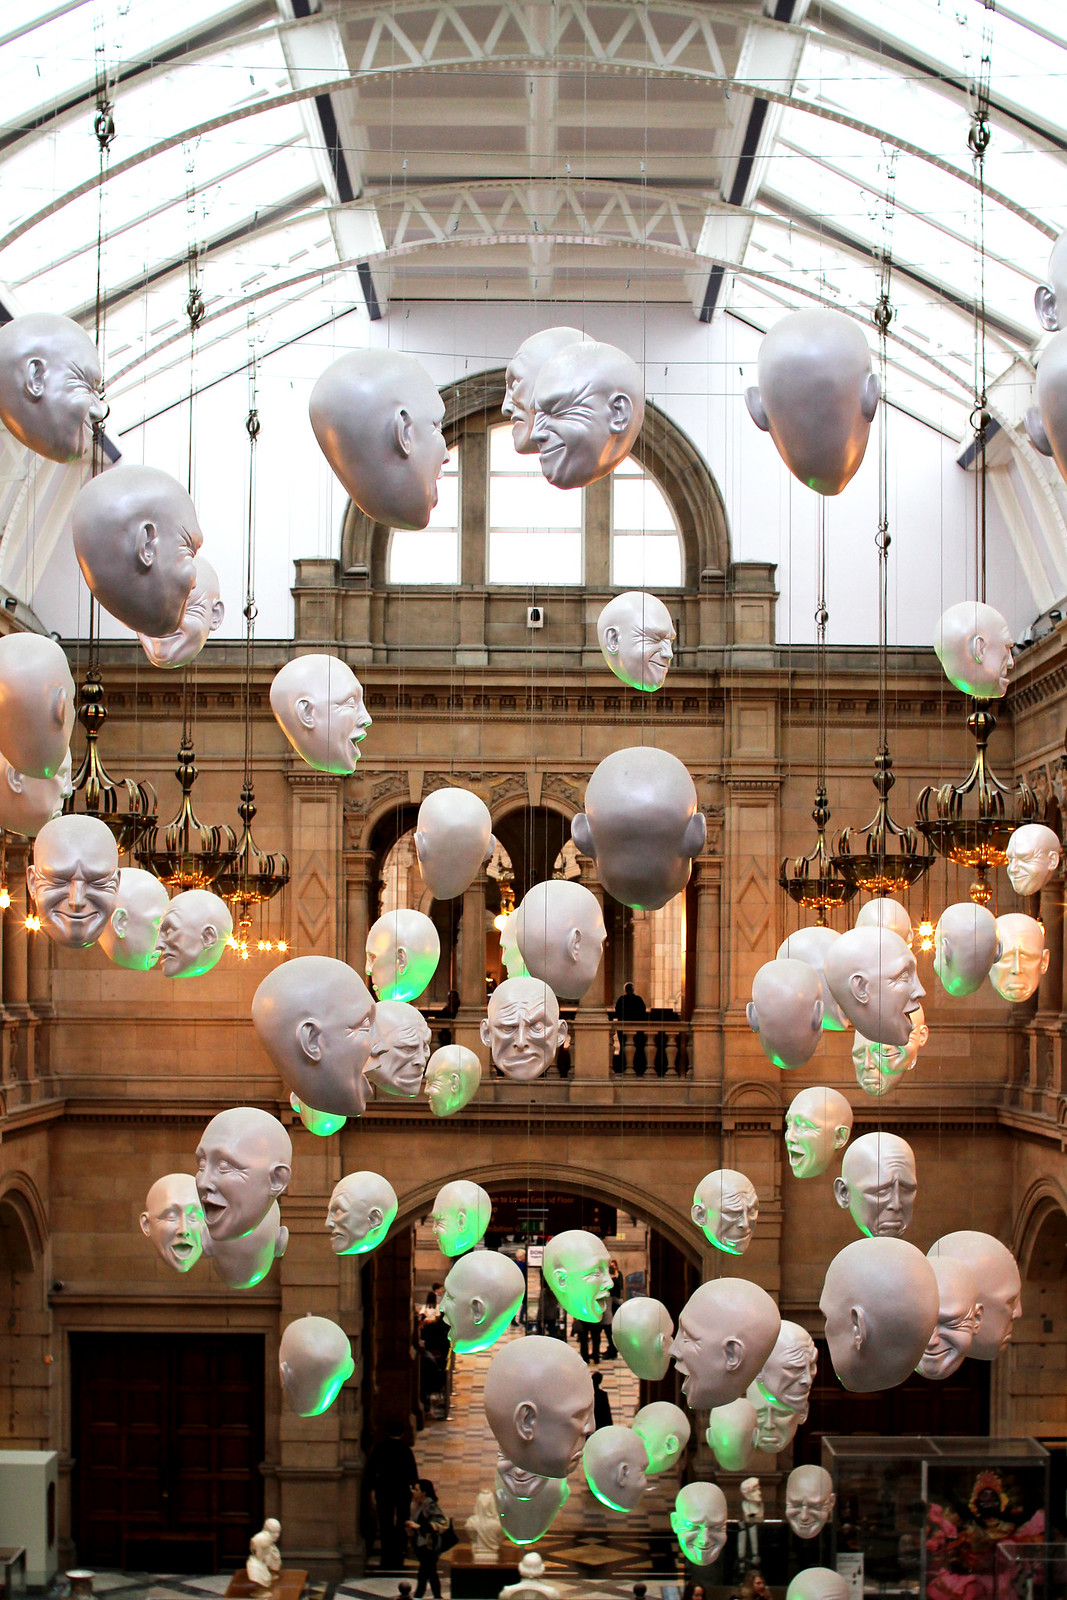 Kelvingrove Gallery Glasgow UK travel blogger